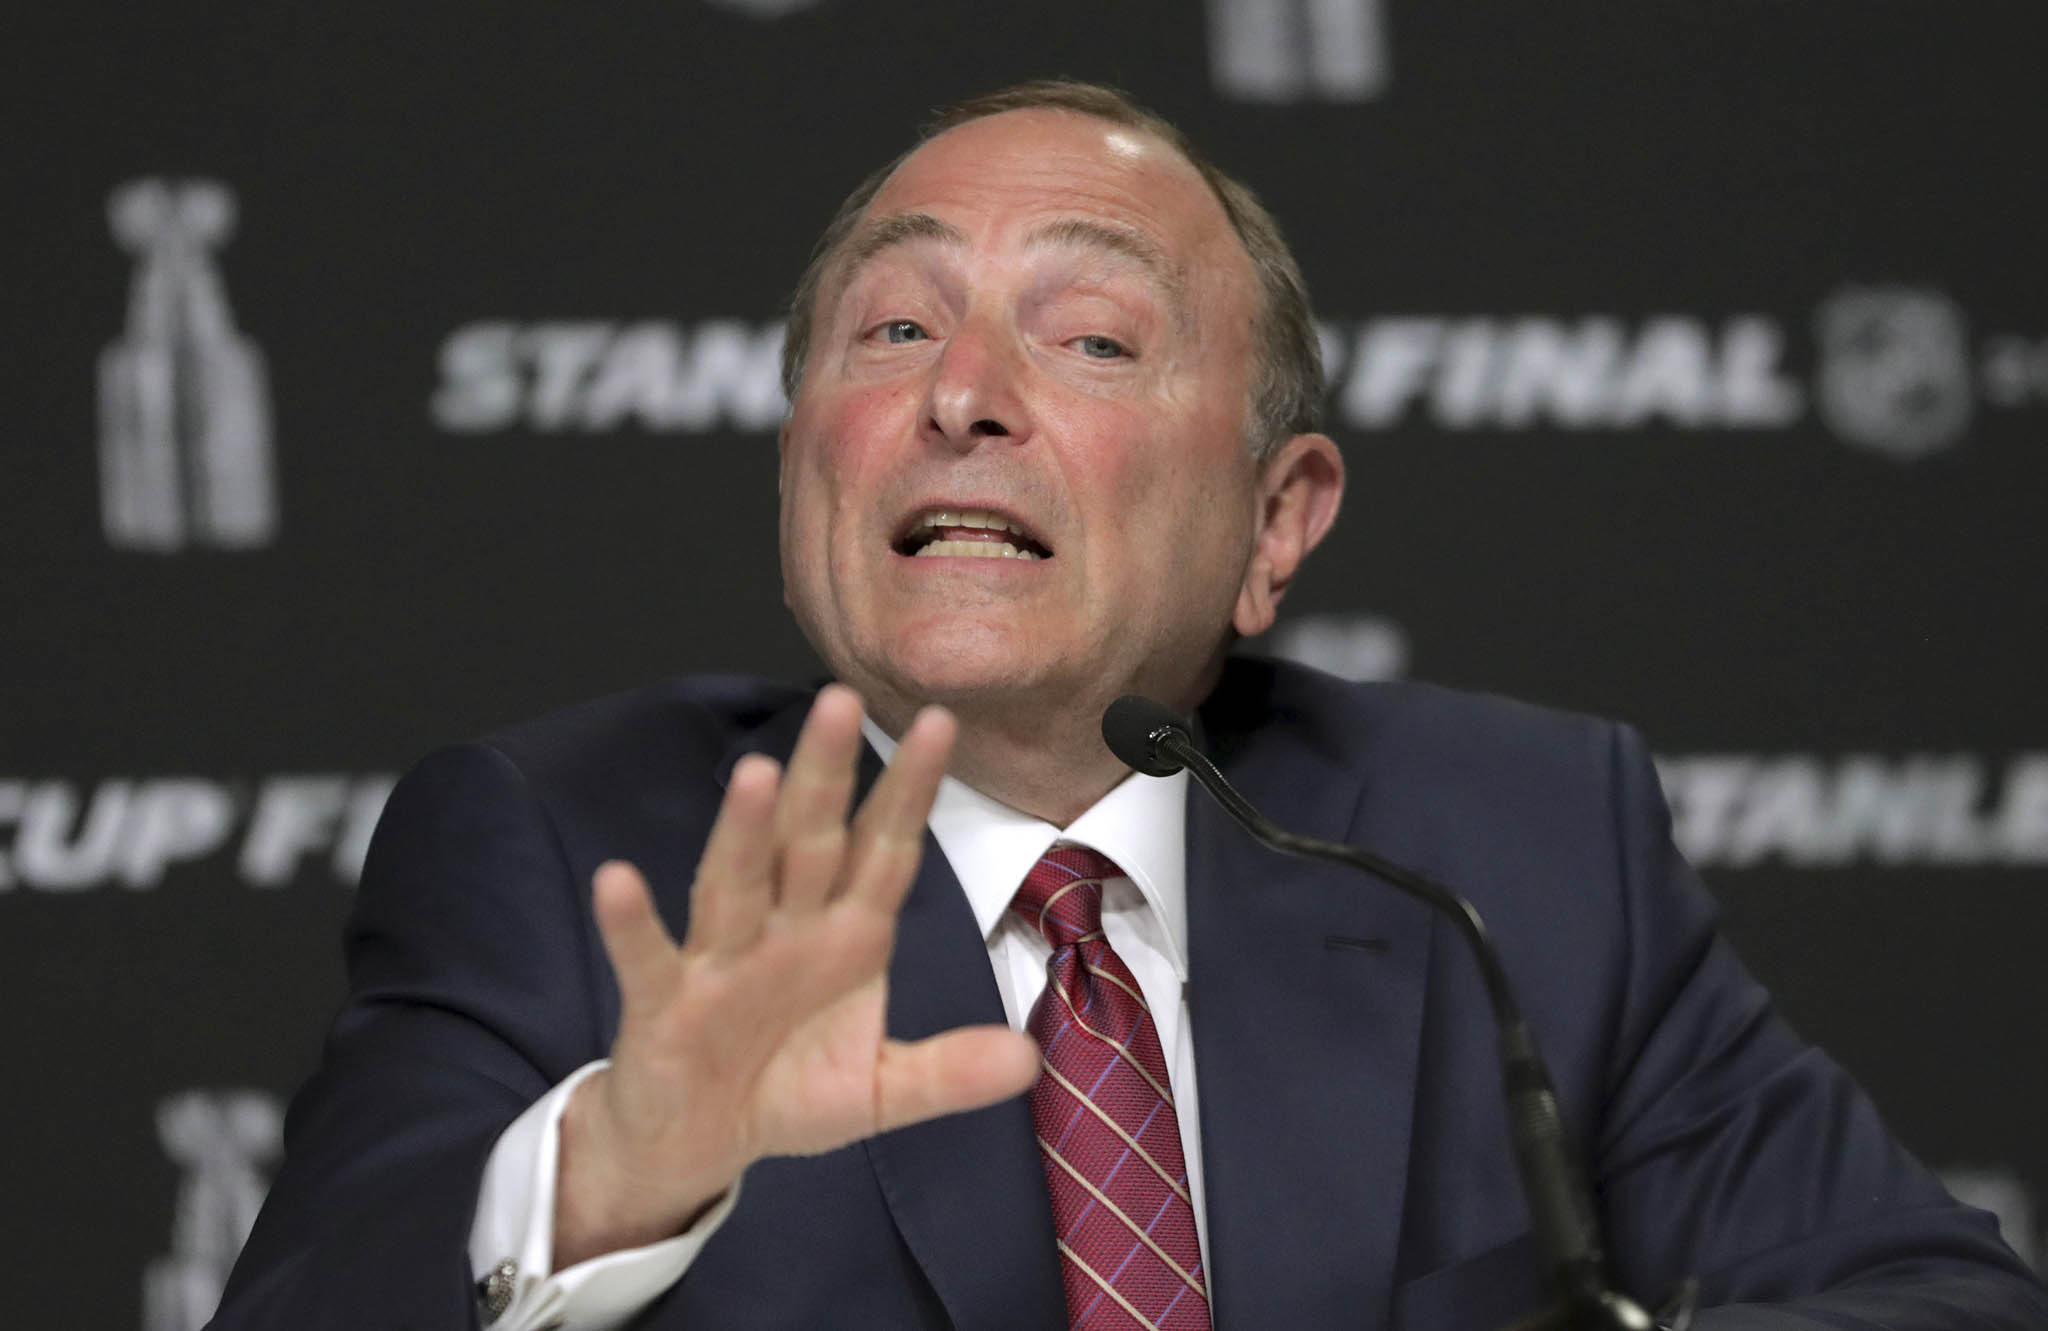 NHL commissioner Gary Bettman was asked to confirm the logo of each team before the ball was dropped.